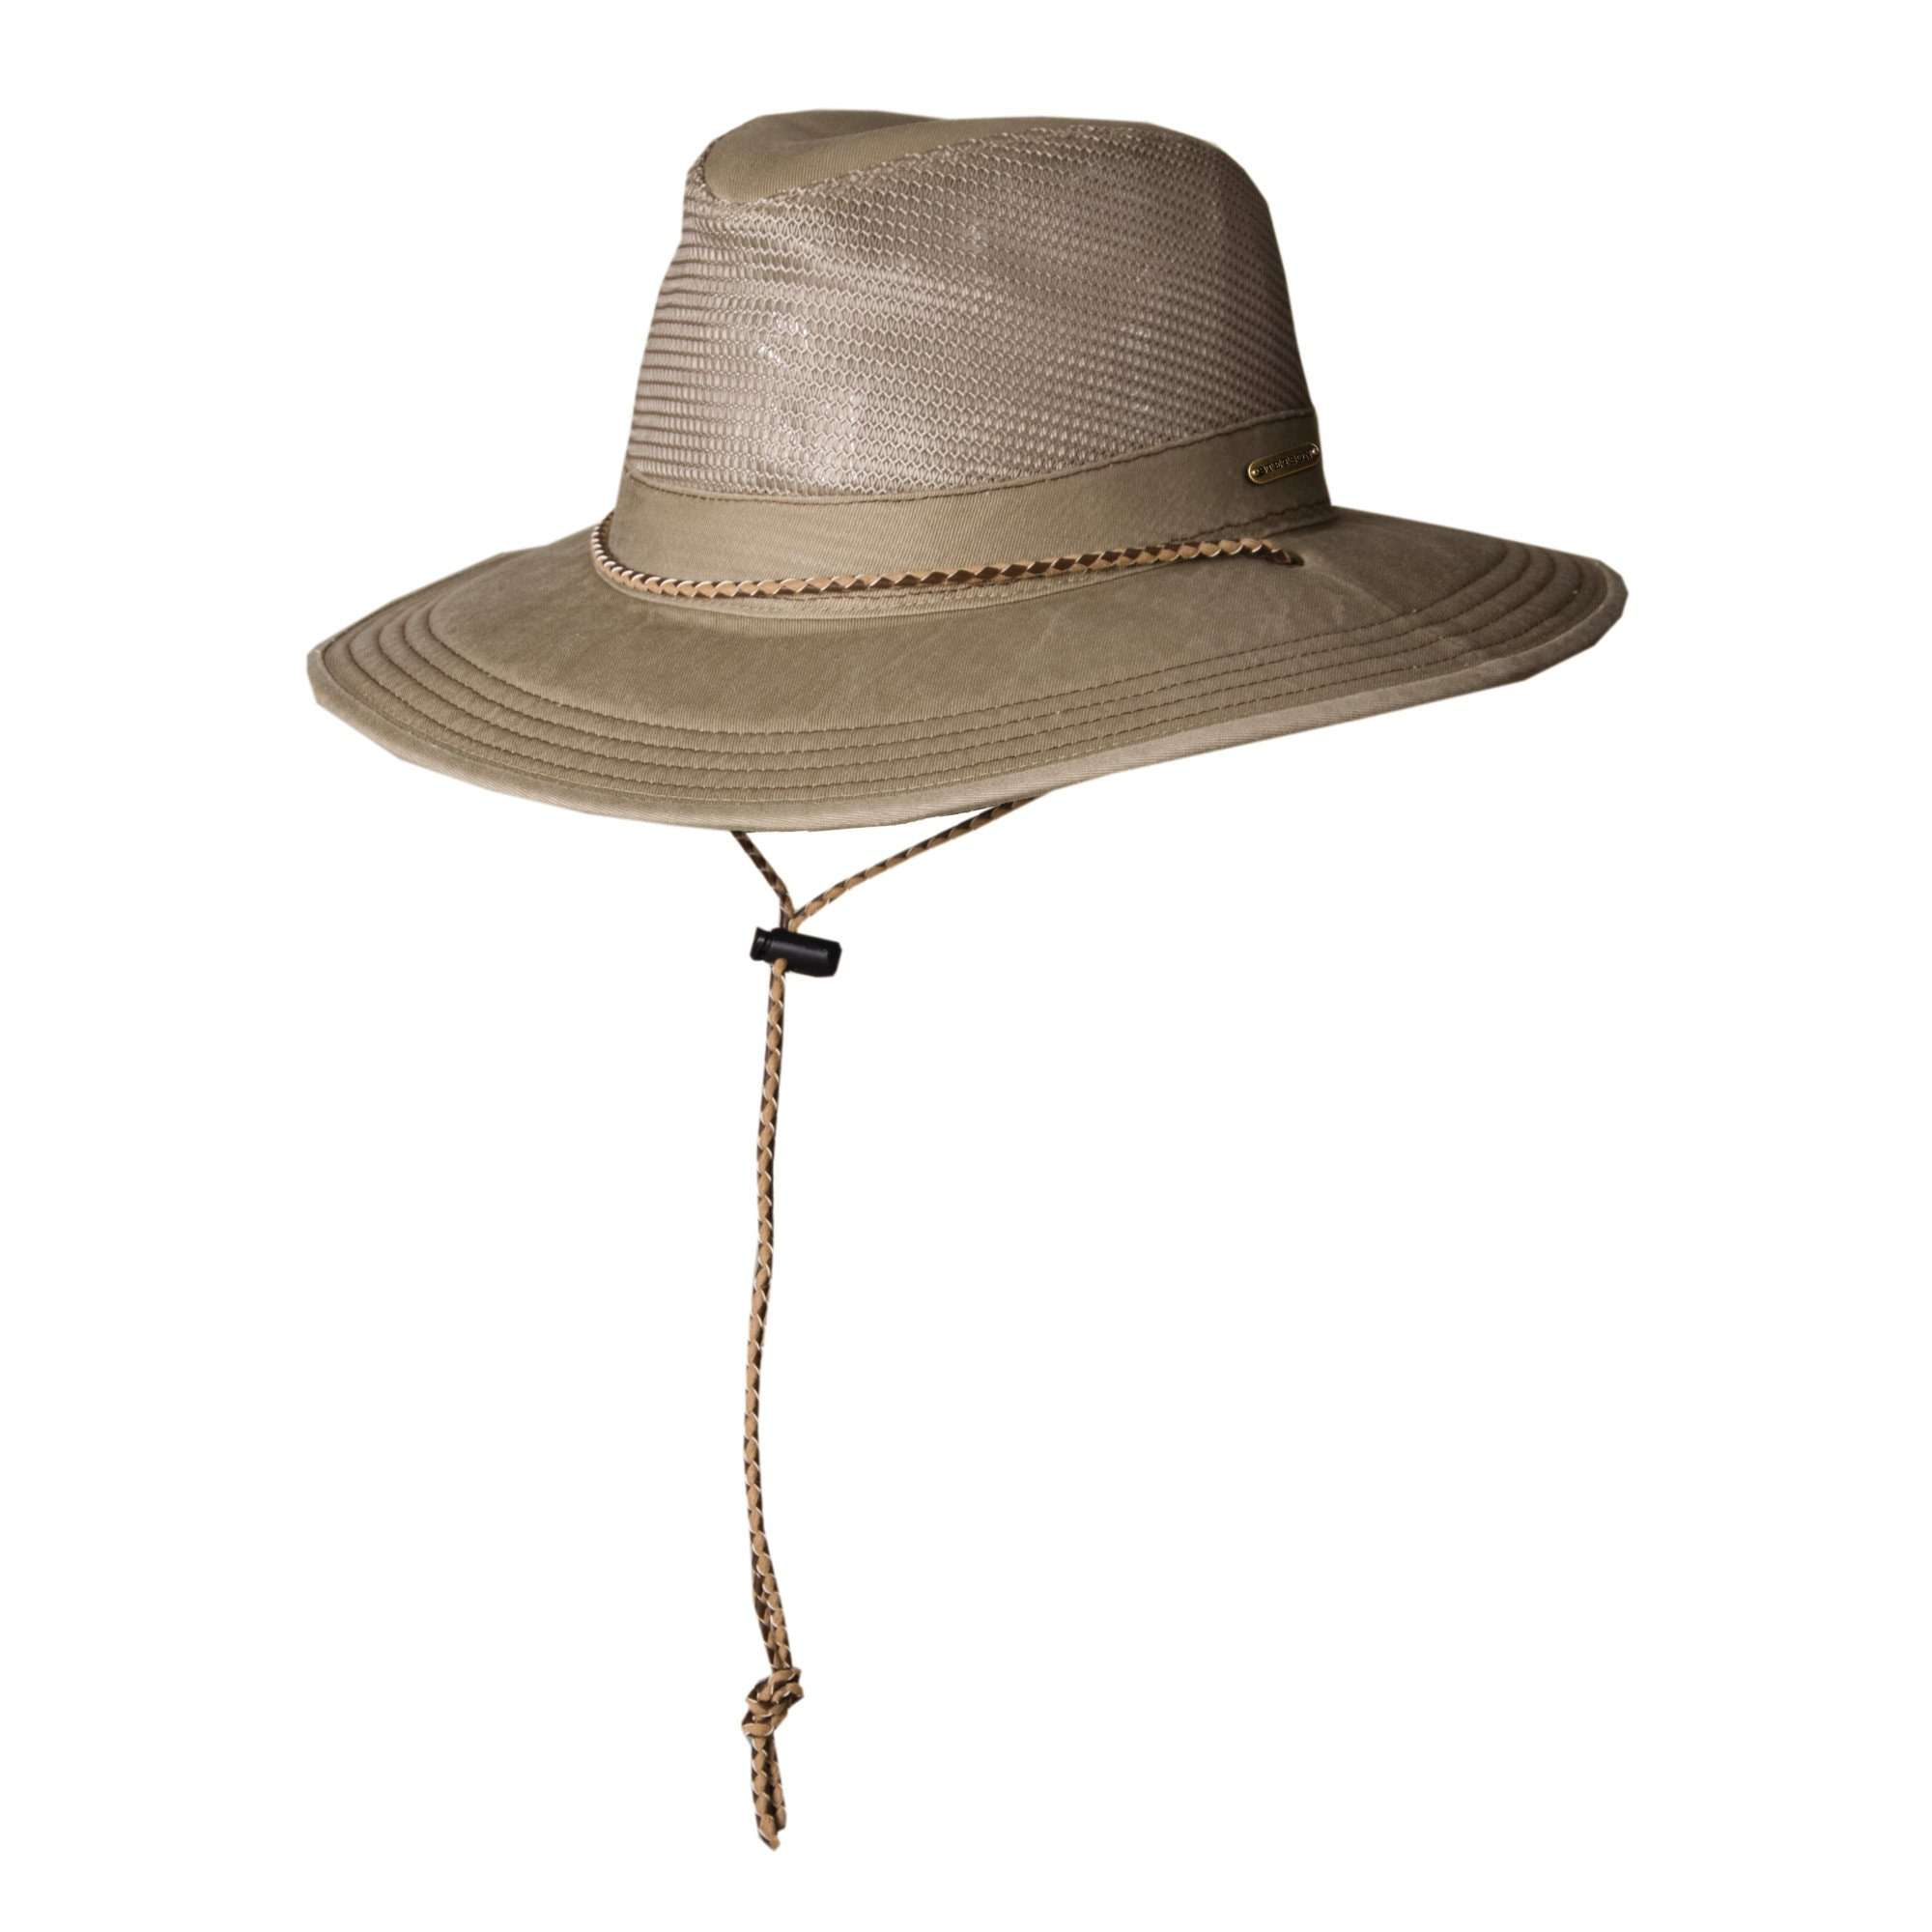 Stetson Mesh Crown Safari Hat - SetarTrading Hats